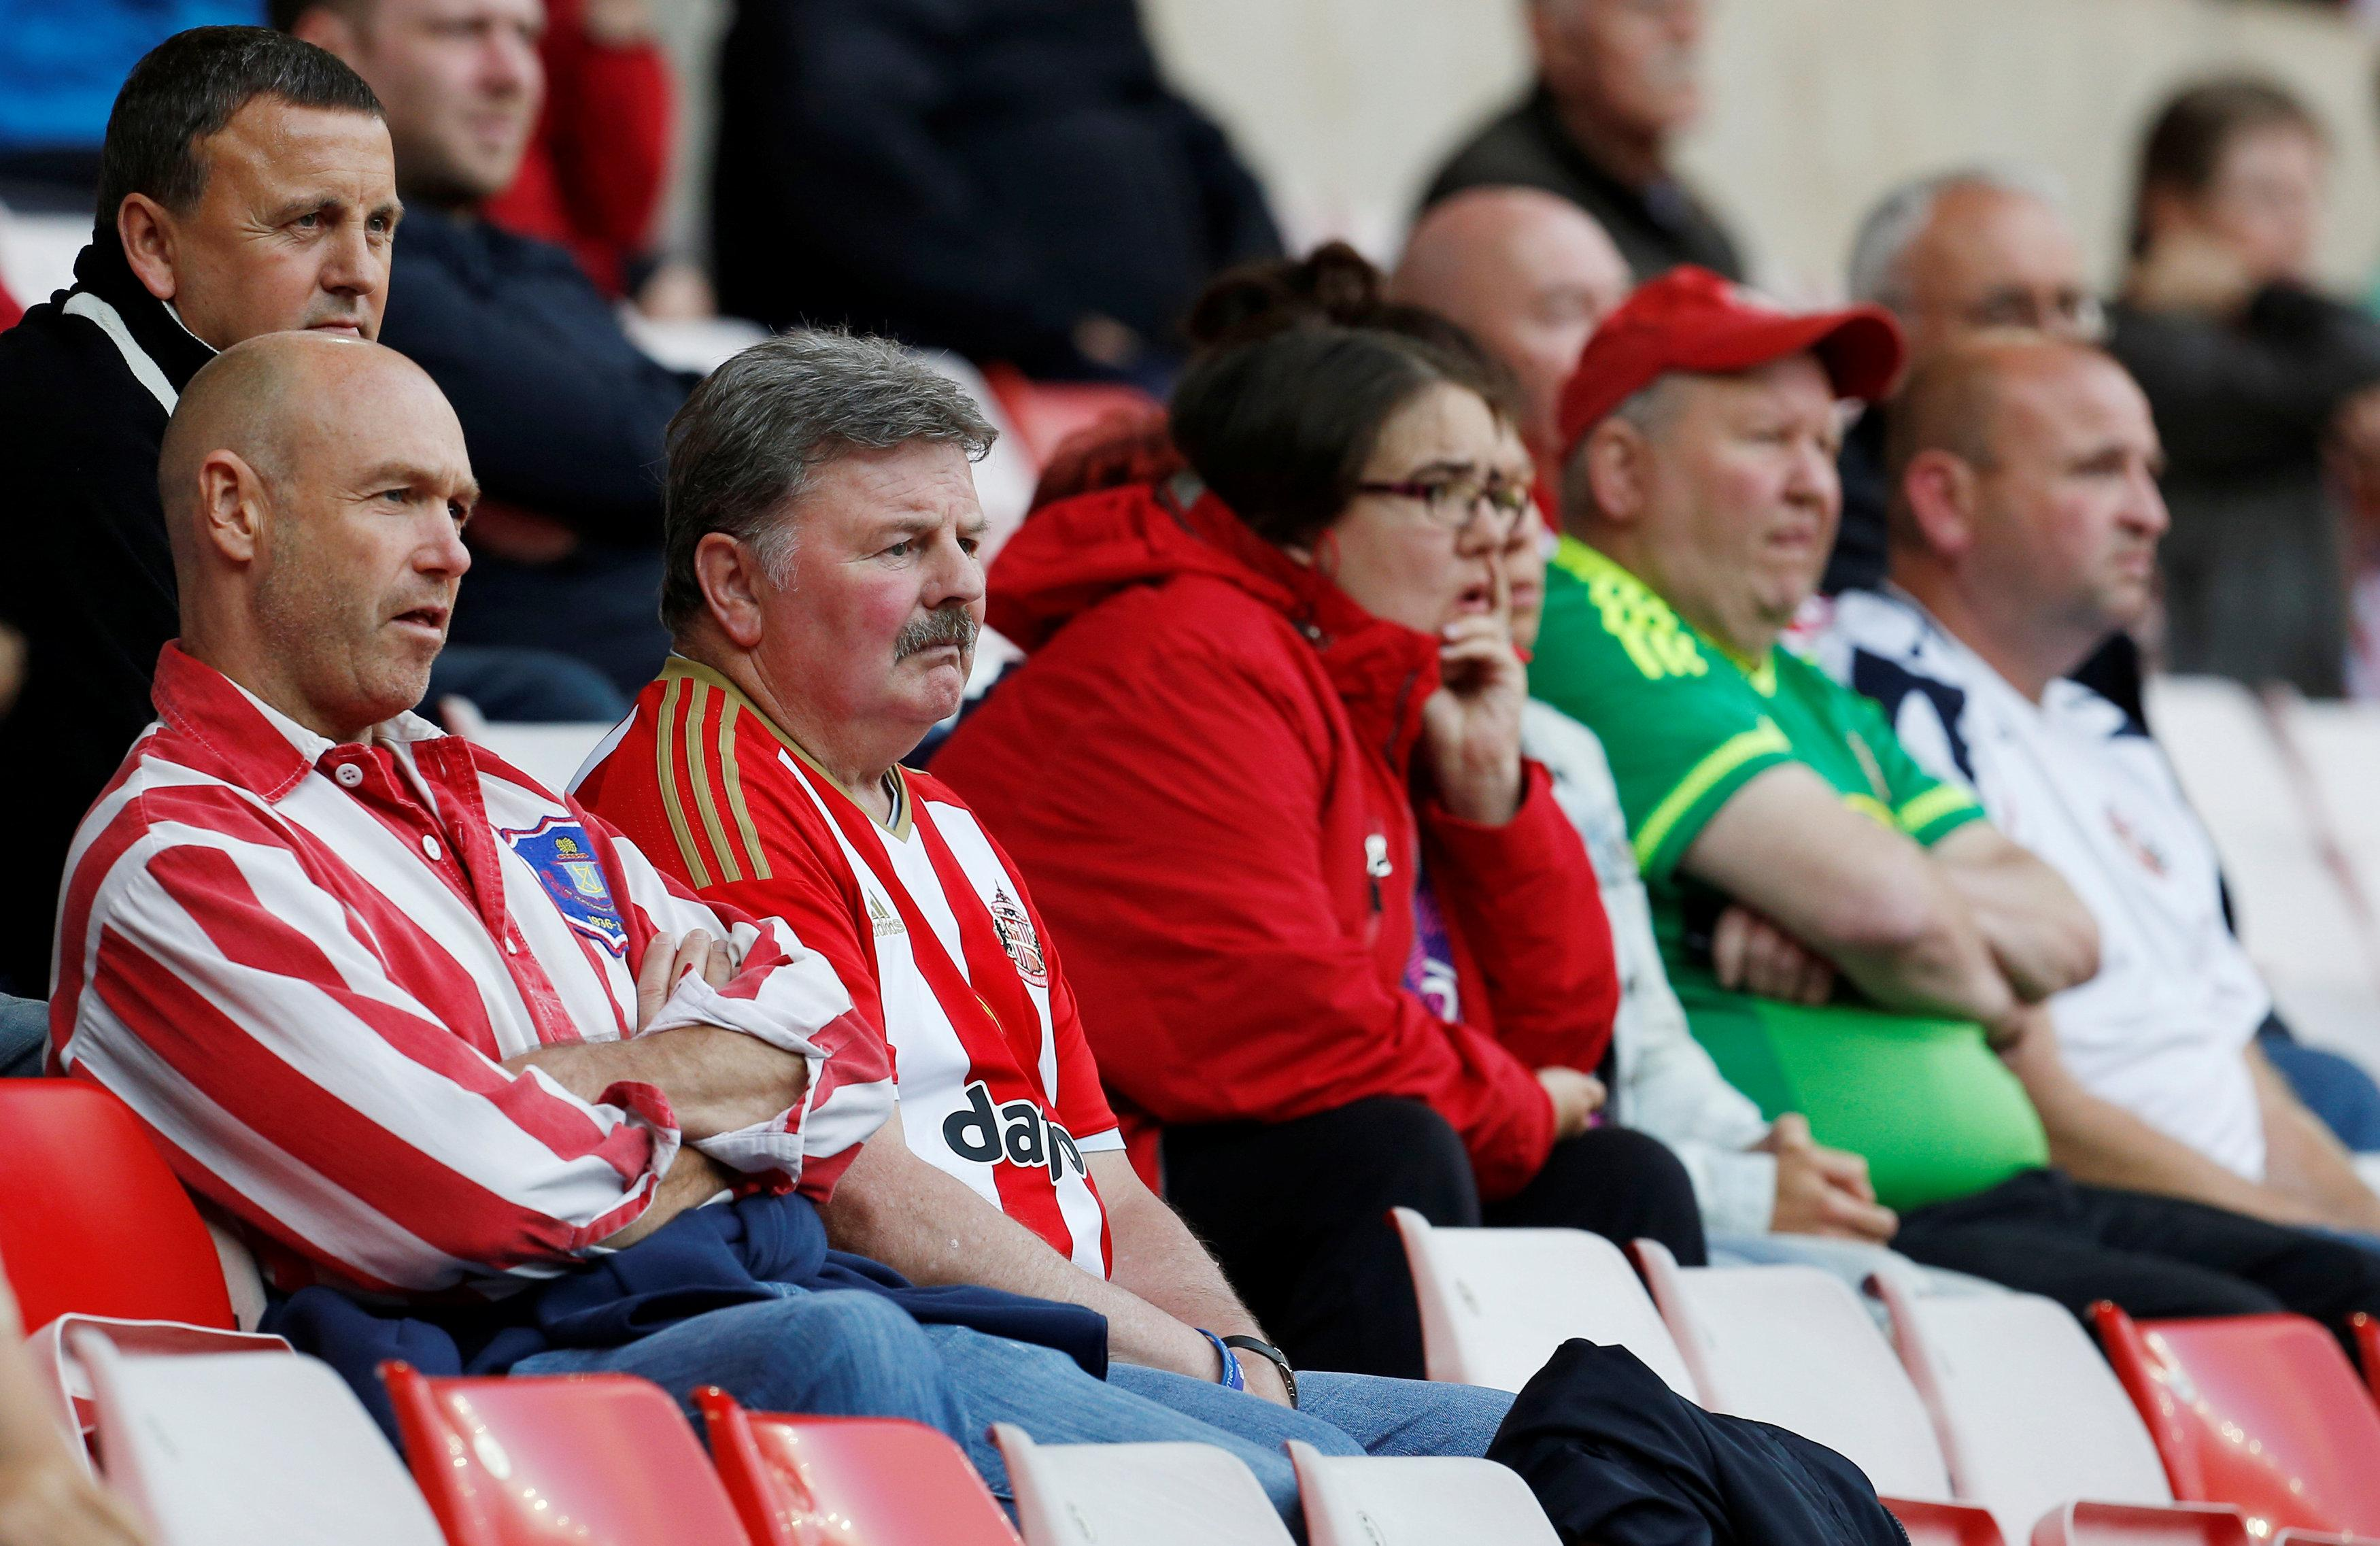 There hasn't been a lot to cheer about for Sunderland fans